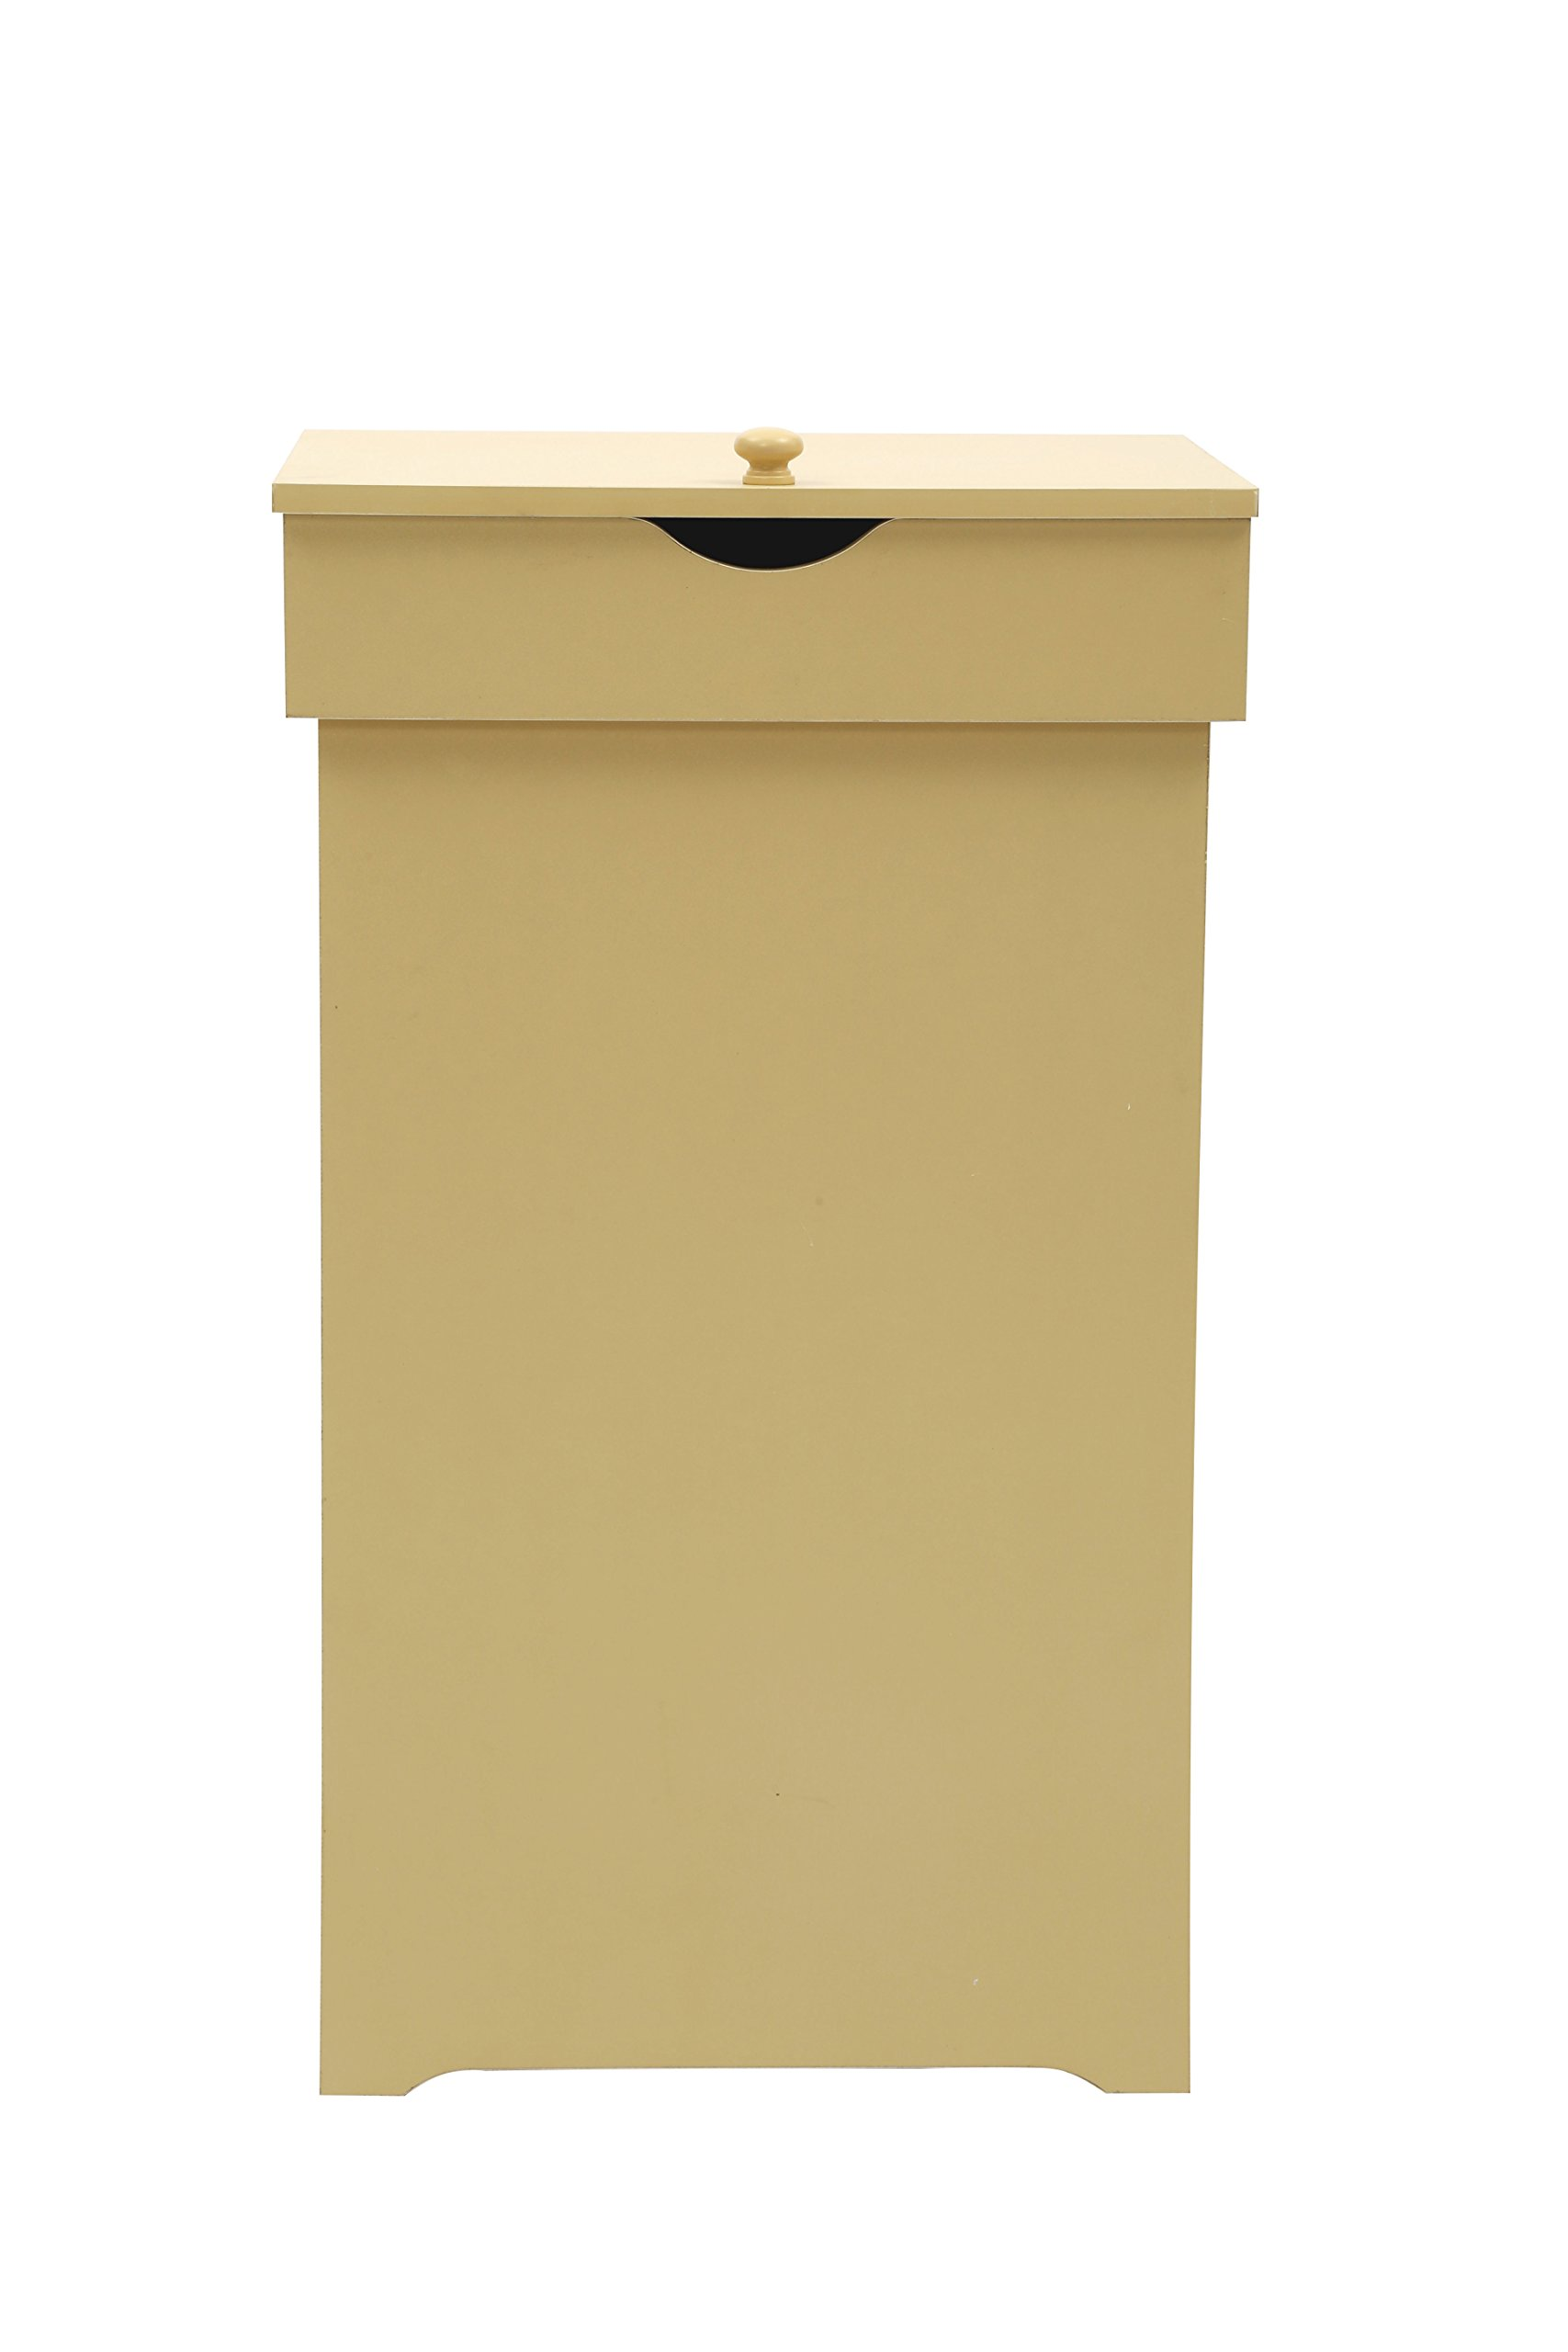 "Home-Like Wood Trash Bin with Lid Kitchen Trash Can Garbage Can 13 Gallon Recycle BinYellow Color16""Wx13""Dx26.5""H"